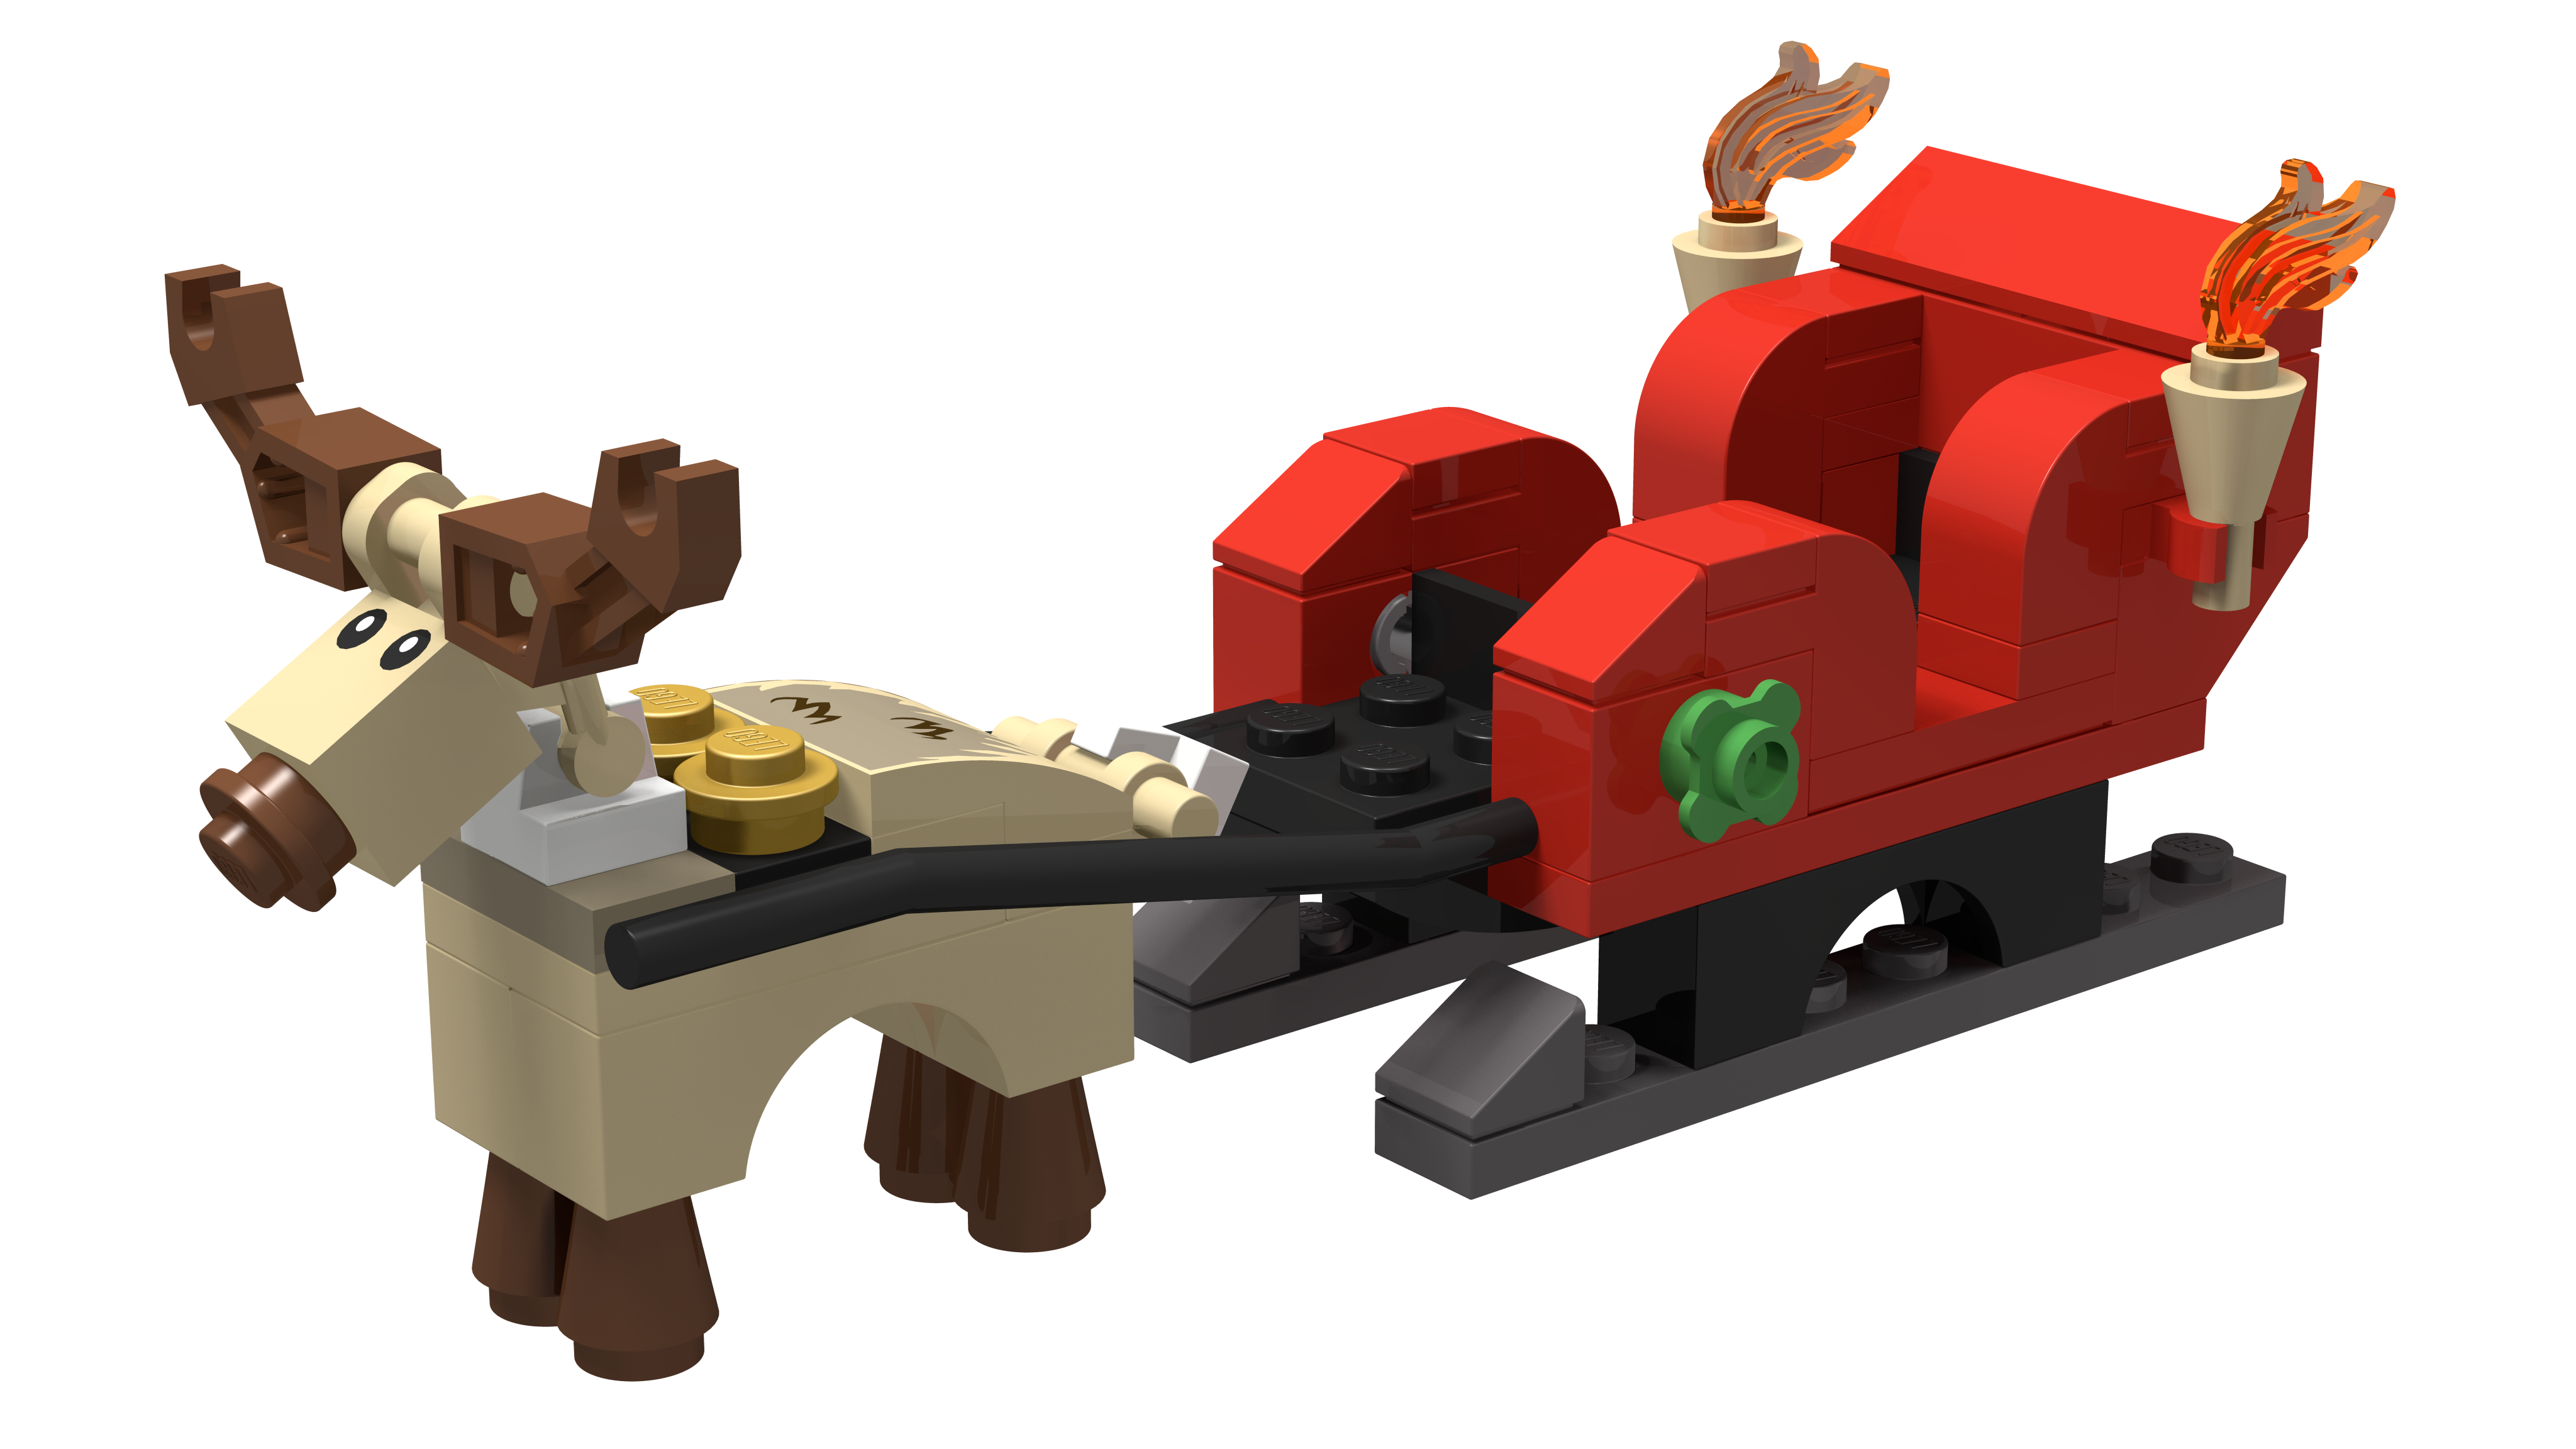 Have a lego christmas. Sleigh clipart toy